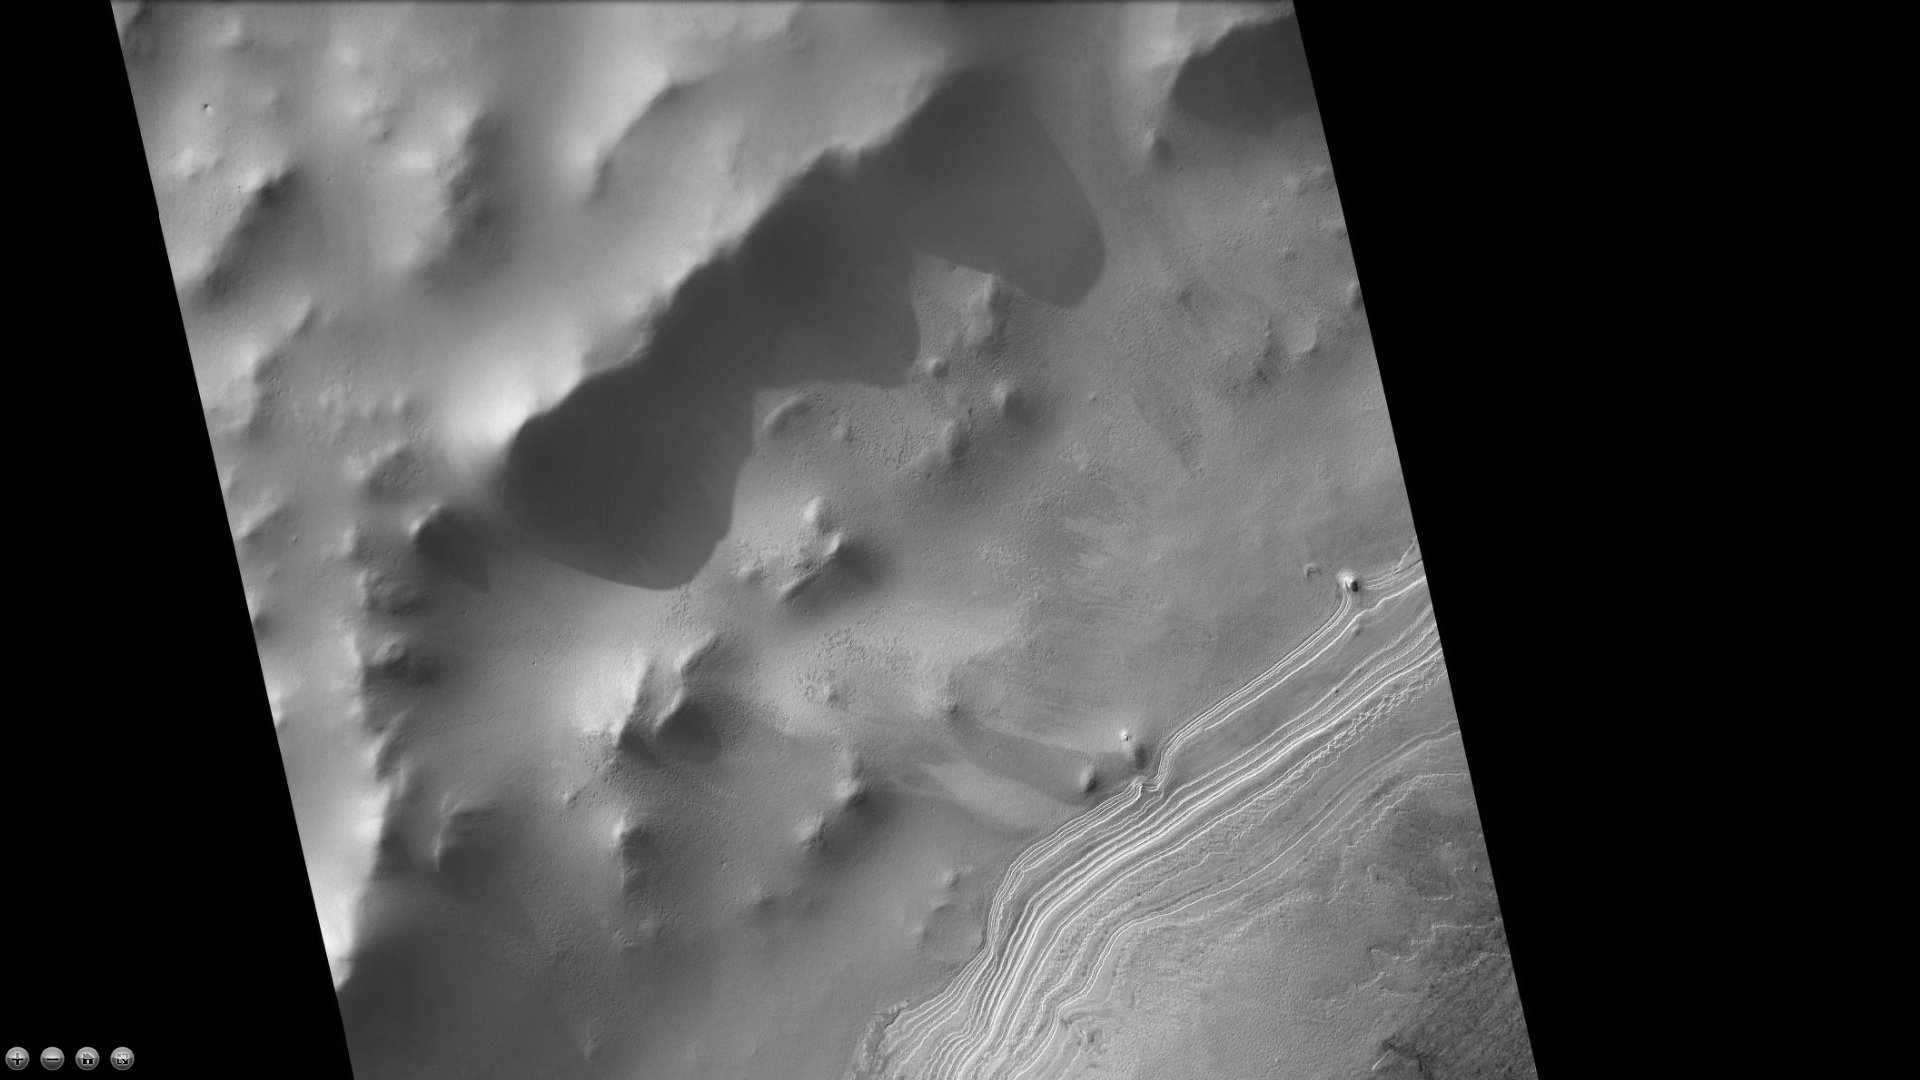 Layers in mound in western side of South crater, as seen by CTX camera (on Mars Reconnaissance Orbiter). Note: this is an enlargement of a previous image of west side of South crater.